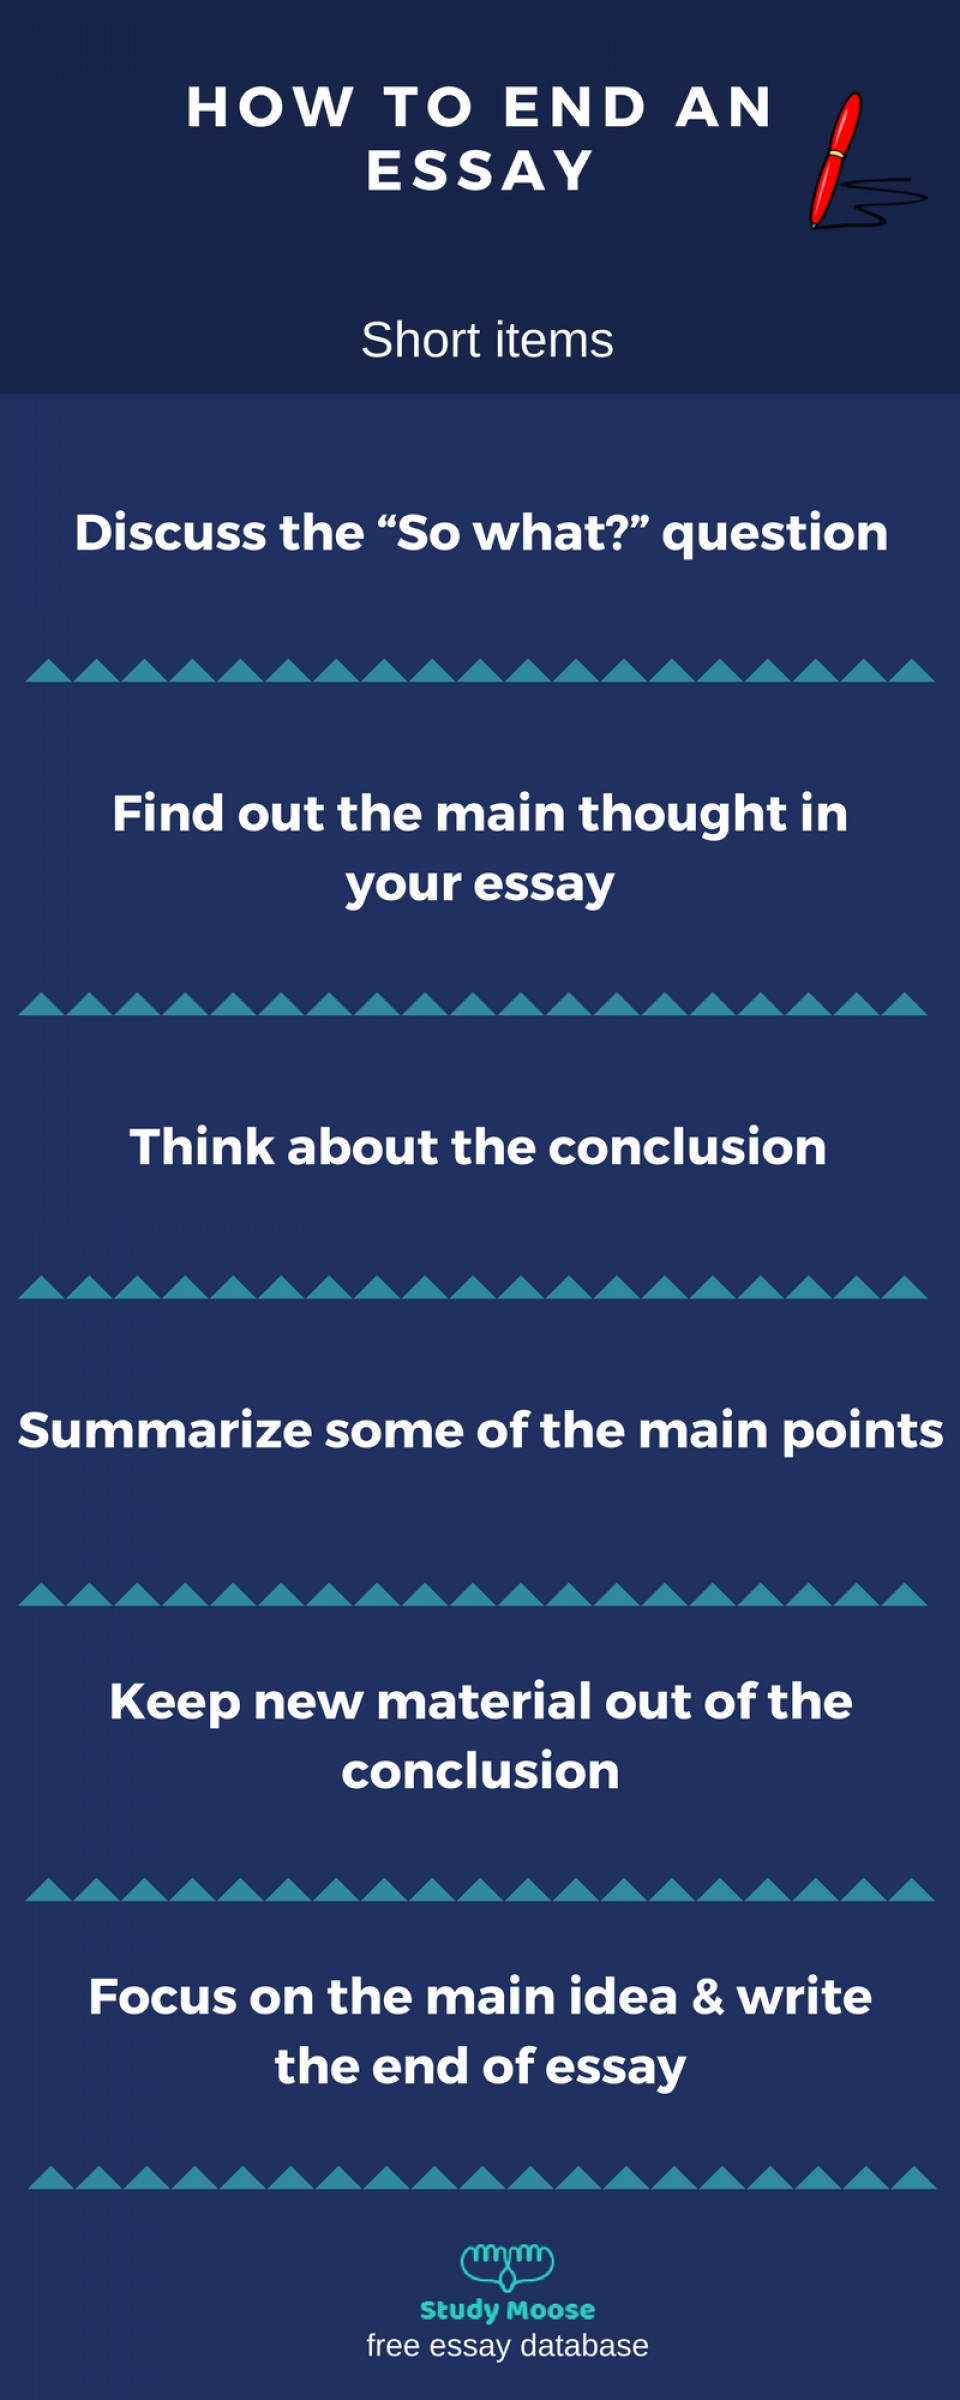 003 Essay Example Good Ways To End An Outstanding Best Way Argumentative How Opinion 960